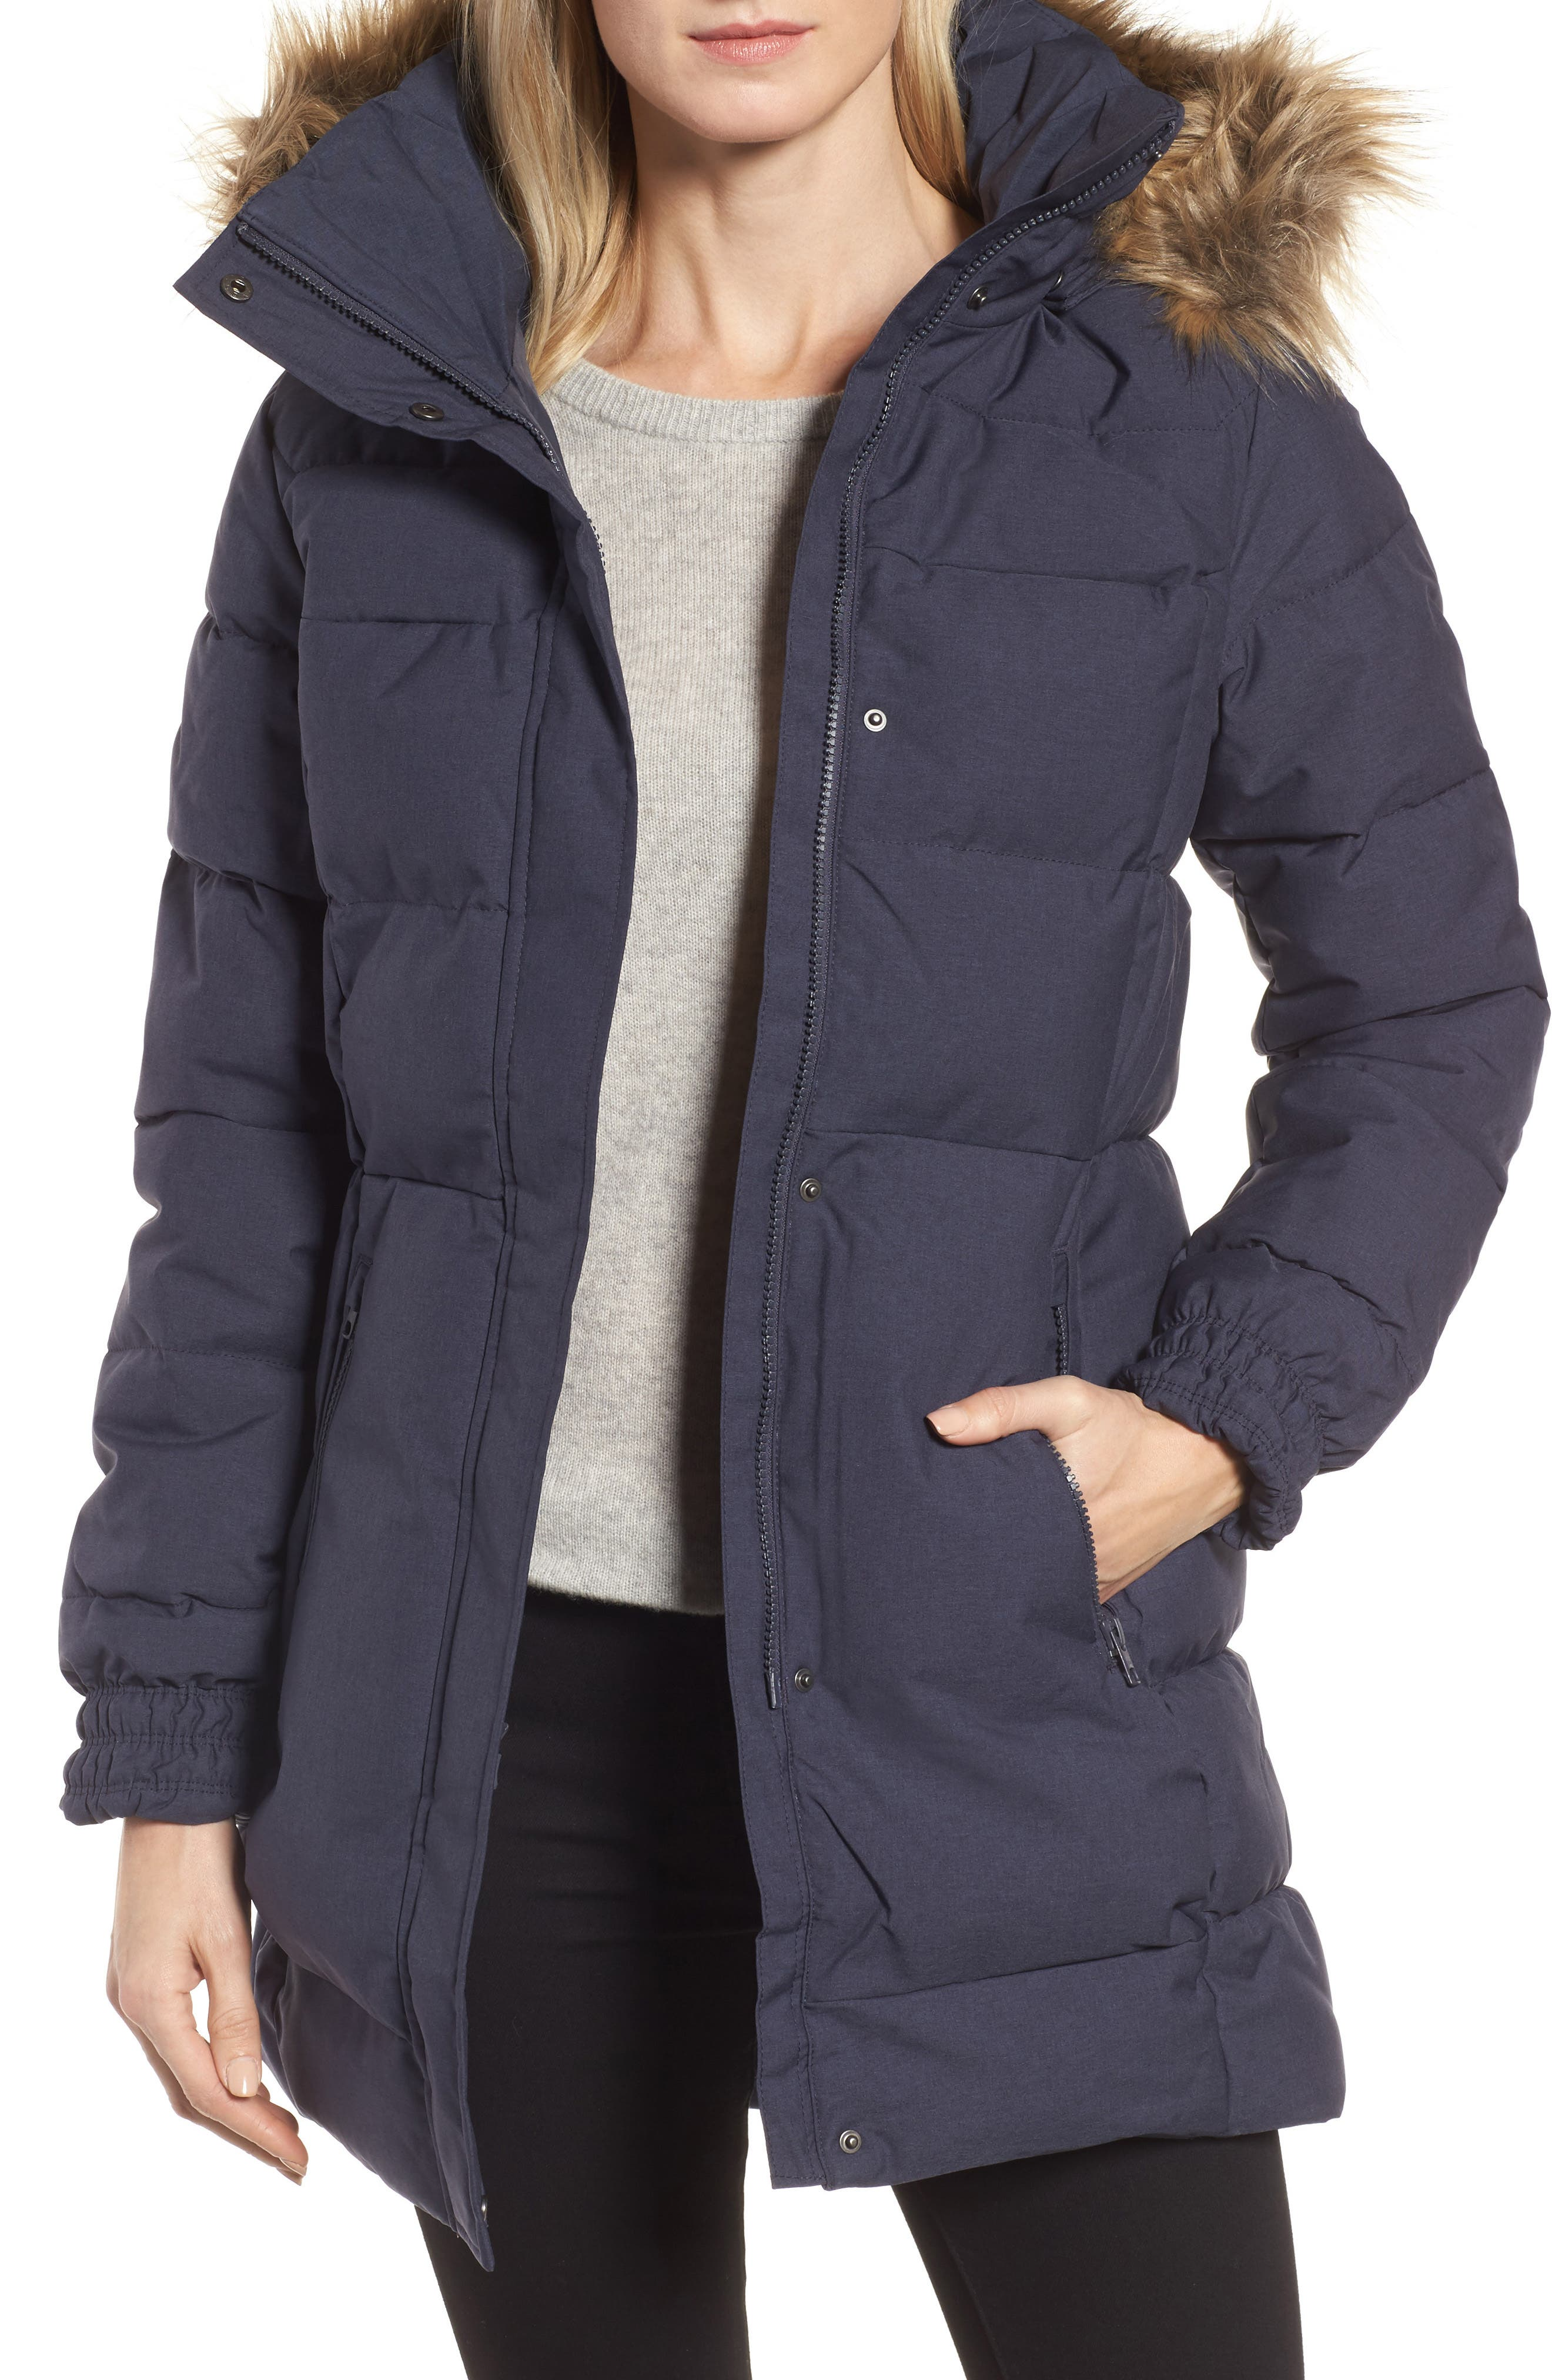 Alternate Image 1 Selected - Helly Hansen Blume Waterproof Parka with Faux Fur Trim